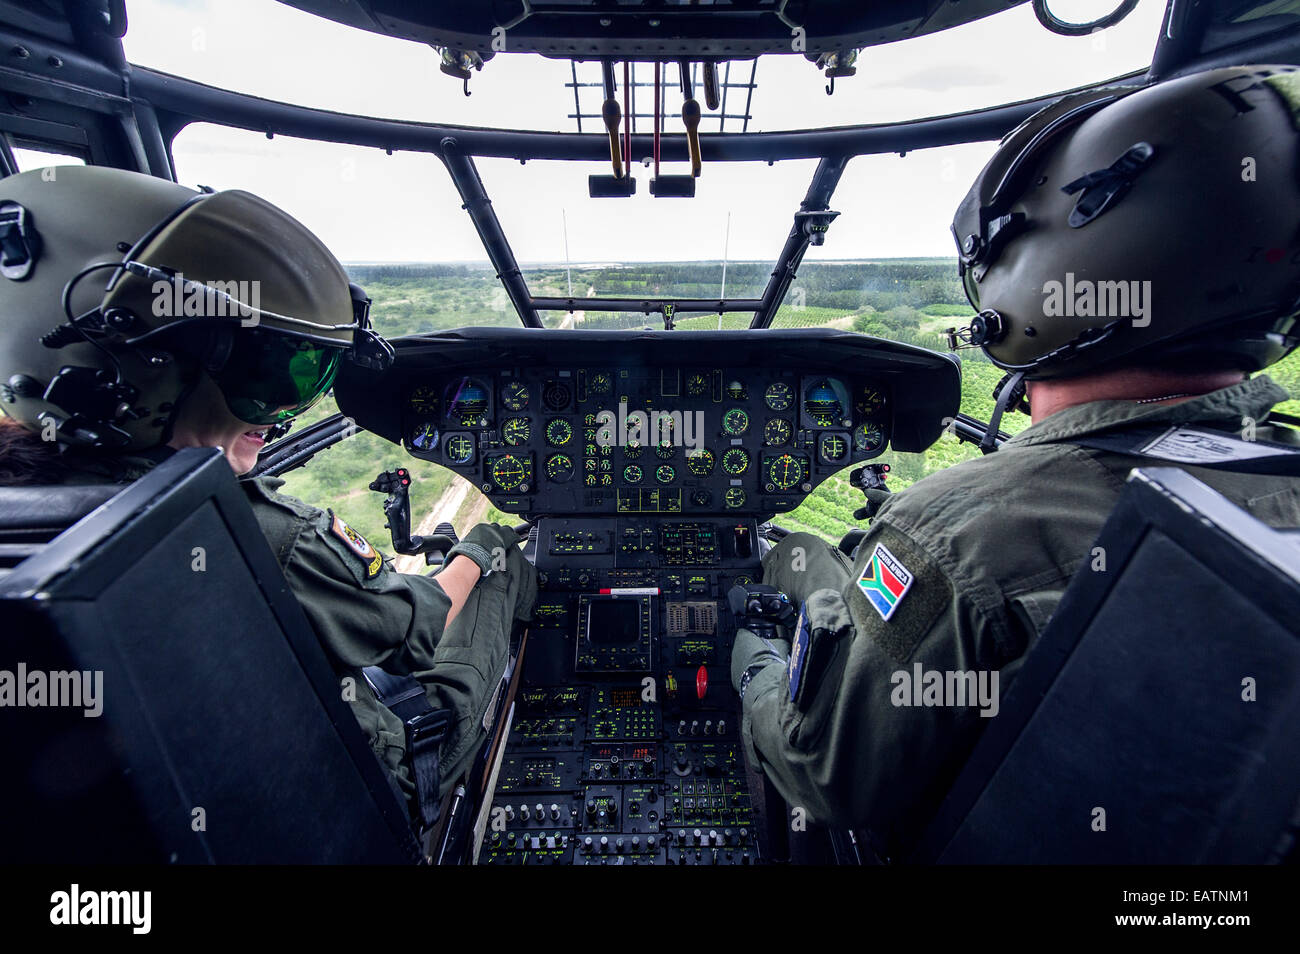 The pilot flight crew of an Atlas Oryx airforce helicopter on patrol. - Stock Image